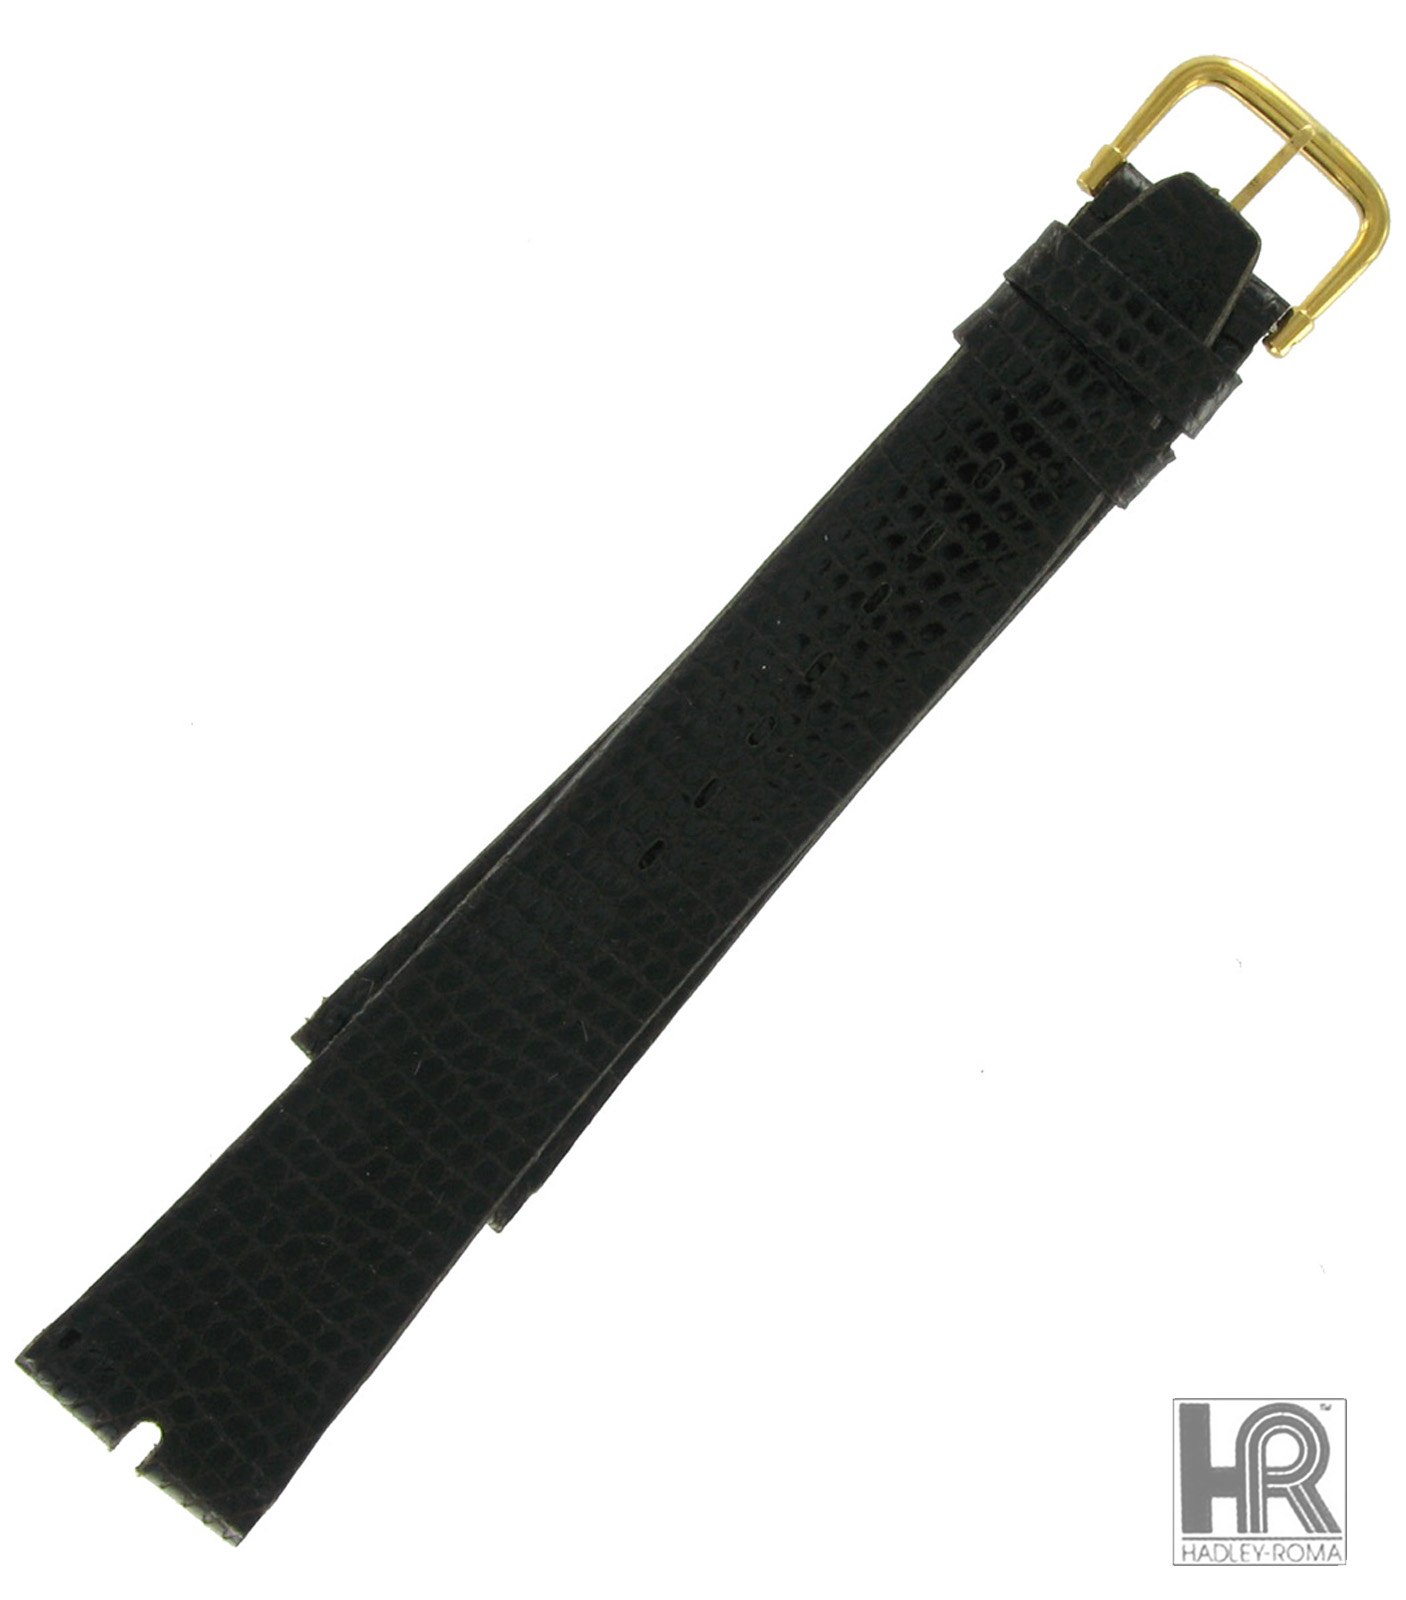 Hadley Roma MS972 20mm Brown Java Lizard Watch Strap Band Chisel Tip